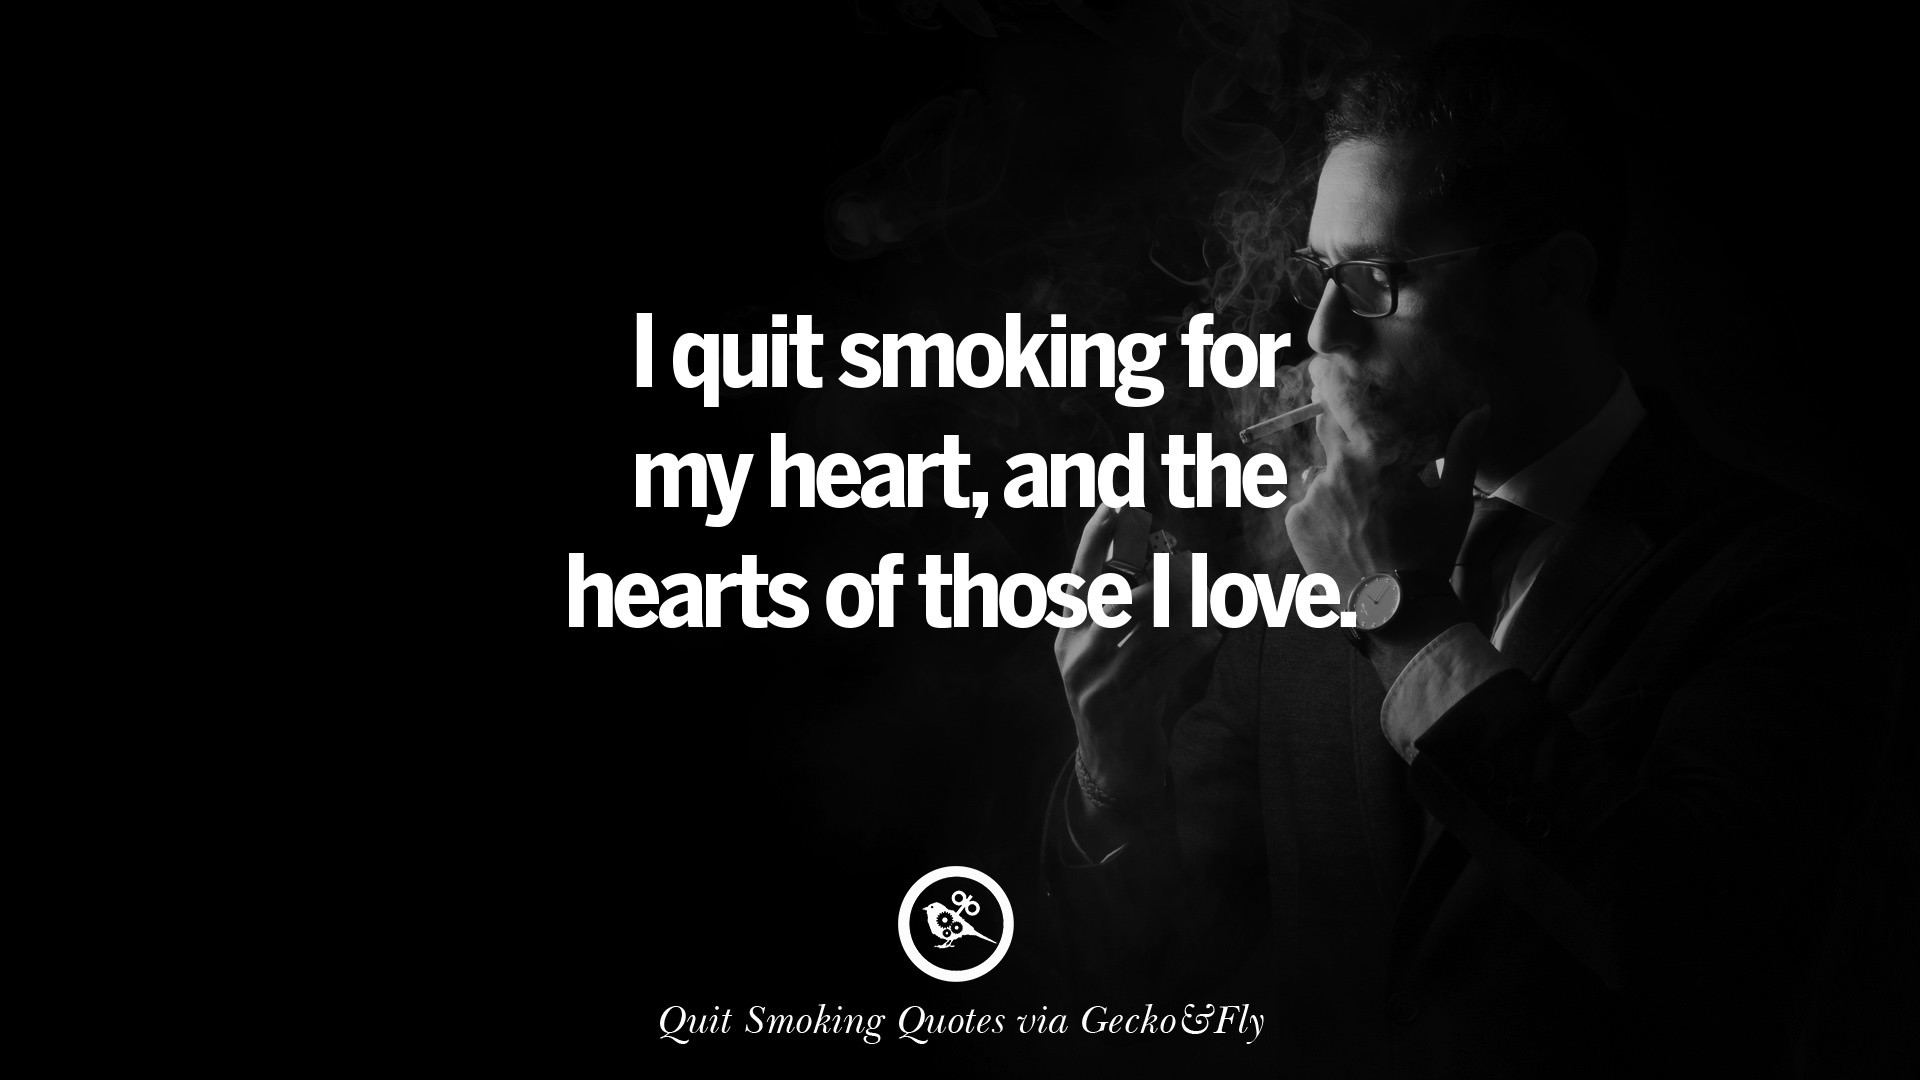 1920x1080 I quit smoking for my heart, and the hearts of those I love.